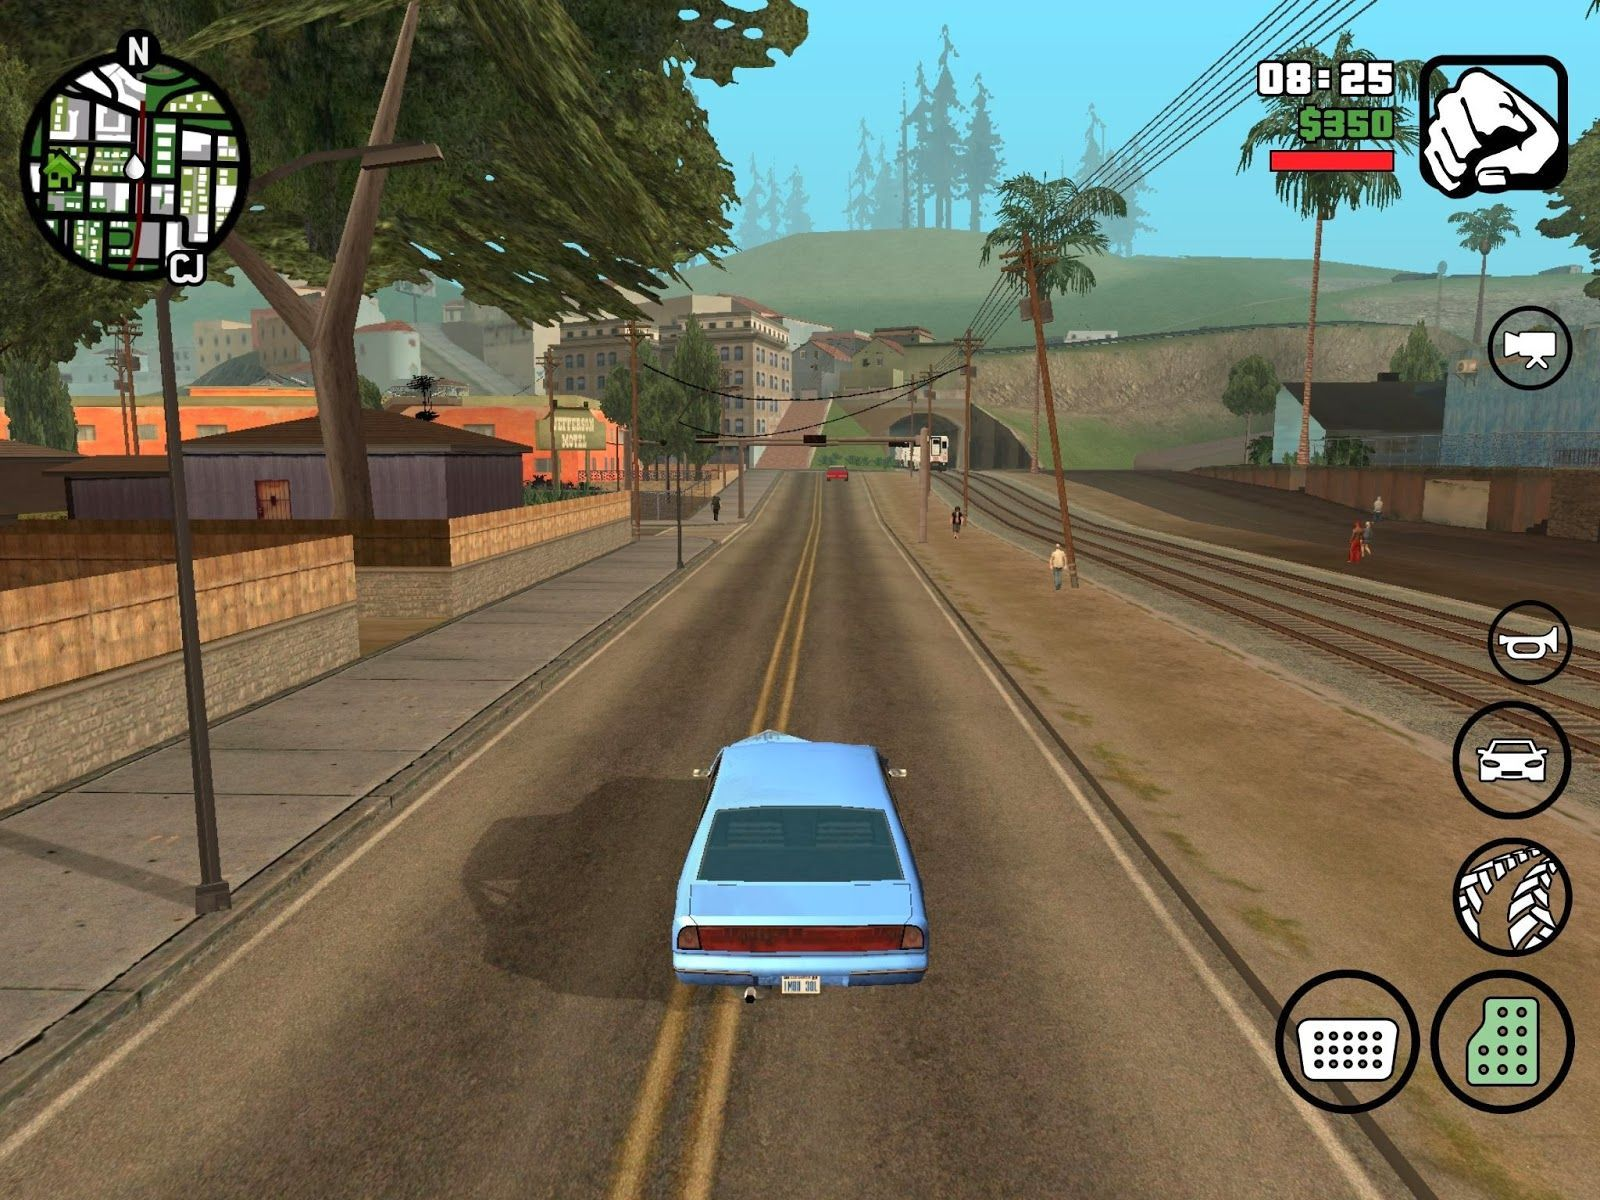 Gta San Andreas Android Cheat Mod Apk Free Download Unlimited